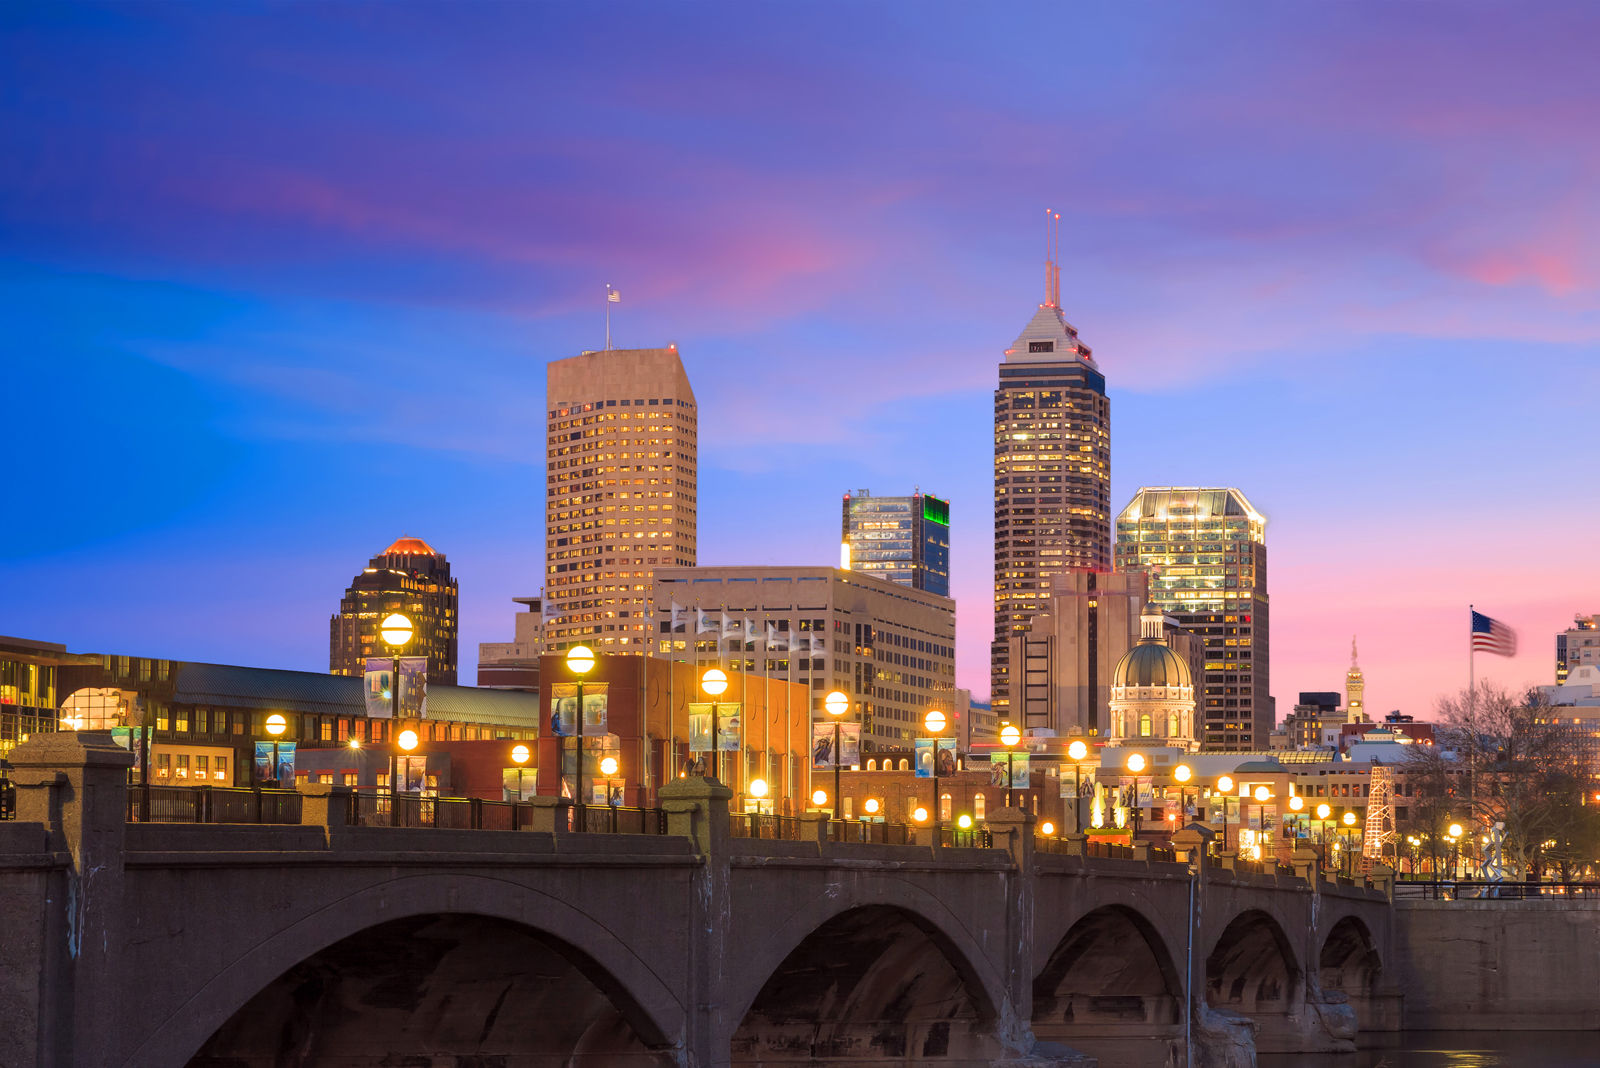 Indianapolis, Indiana is known for Hoosier hospitality, which suits bed bugs well. The city ranks eighth on Terminix's list. (Thinkstock)